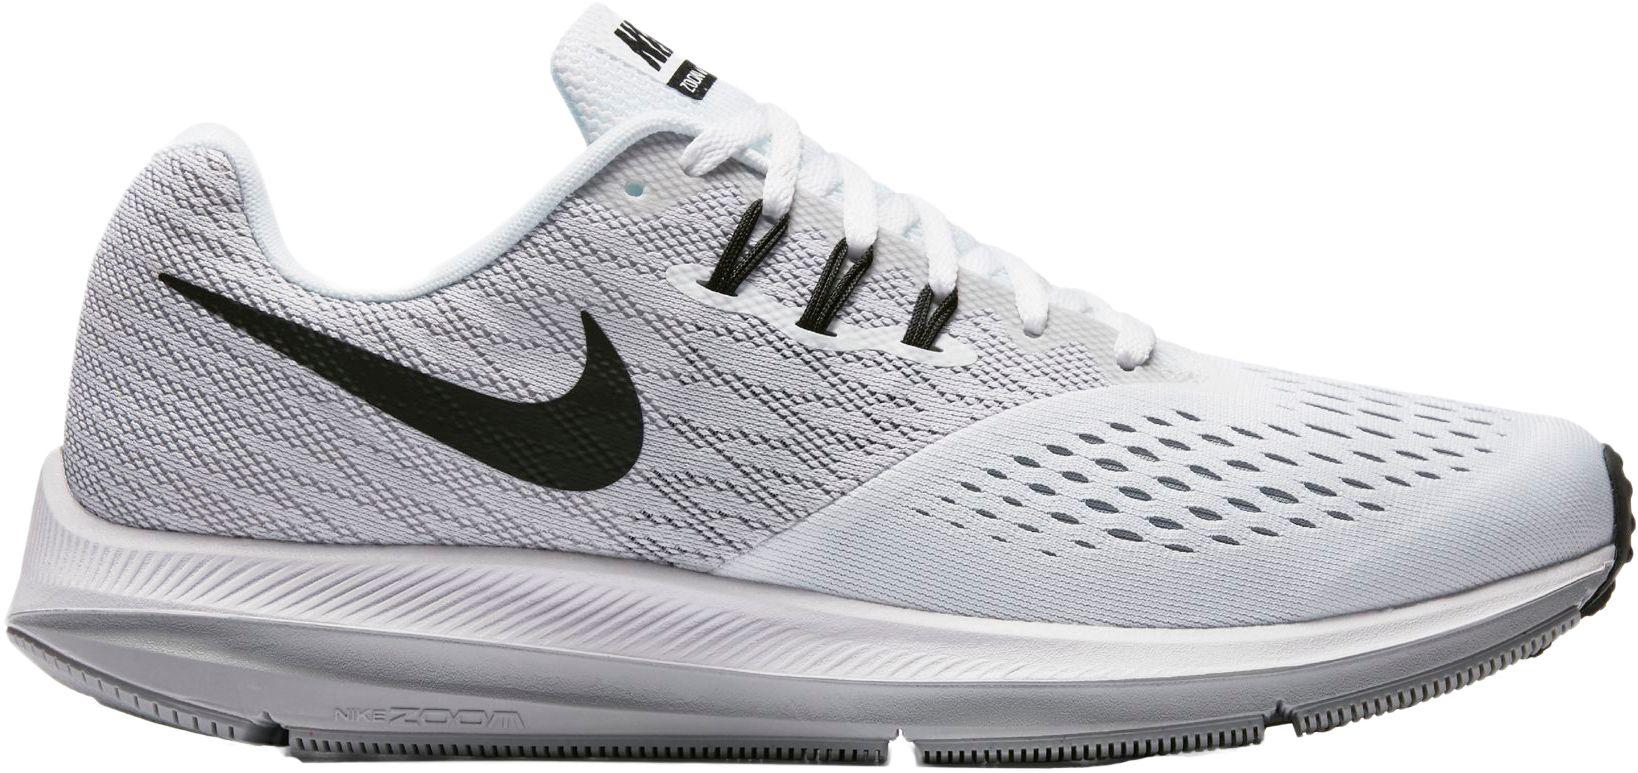 new style c22fd 4e522 Nike - White Air Zoom Winflo 4 Running Shoes for Men - Lyst